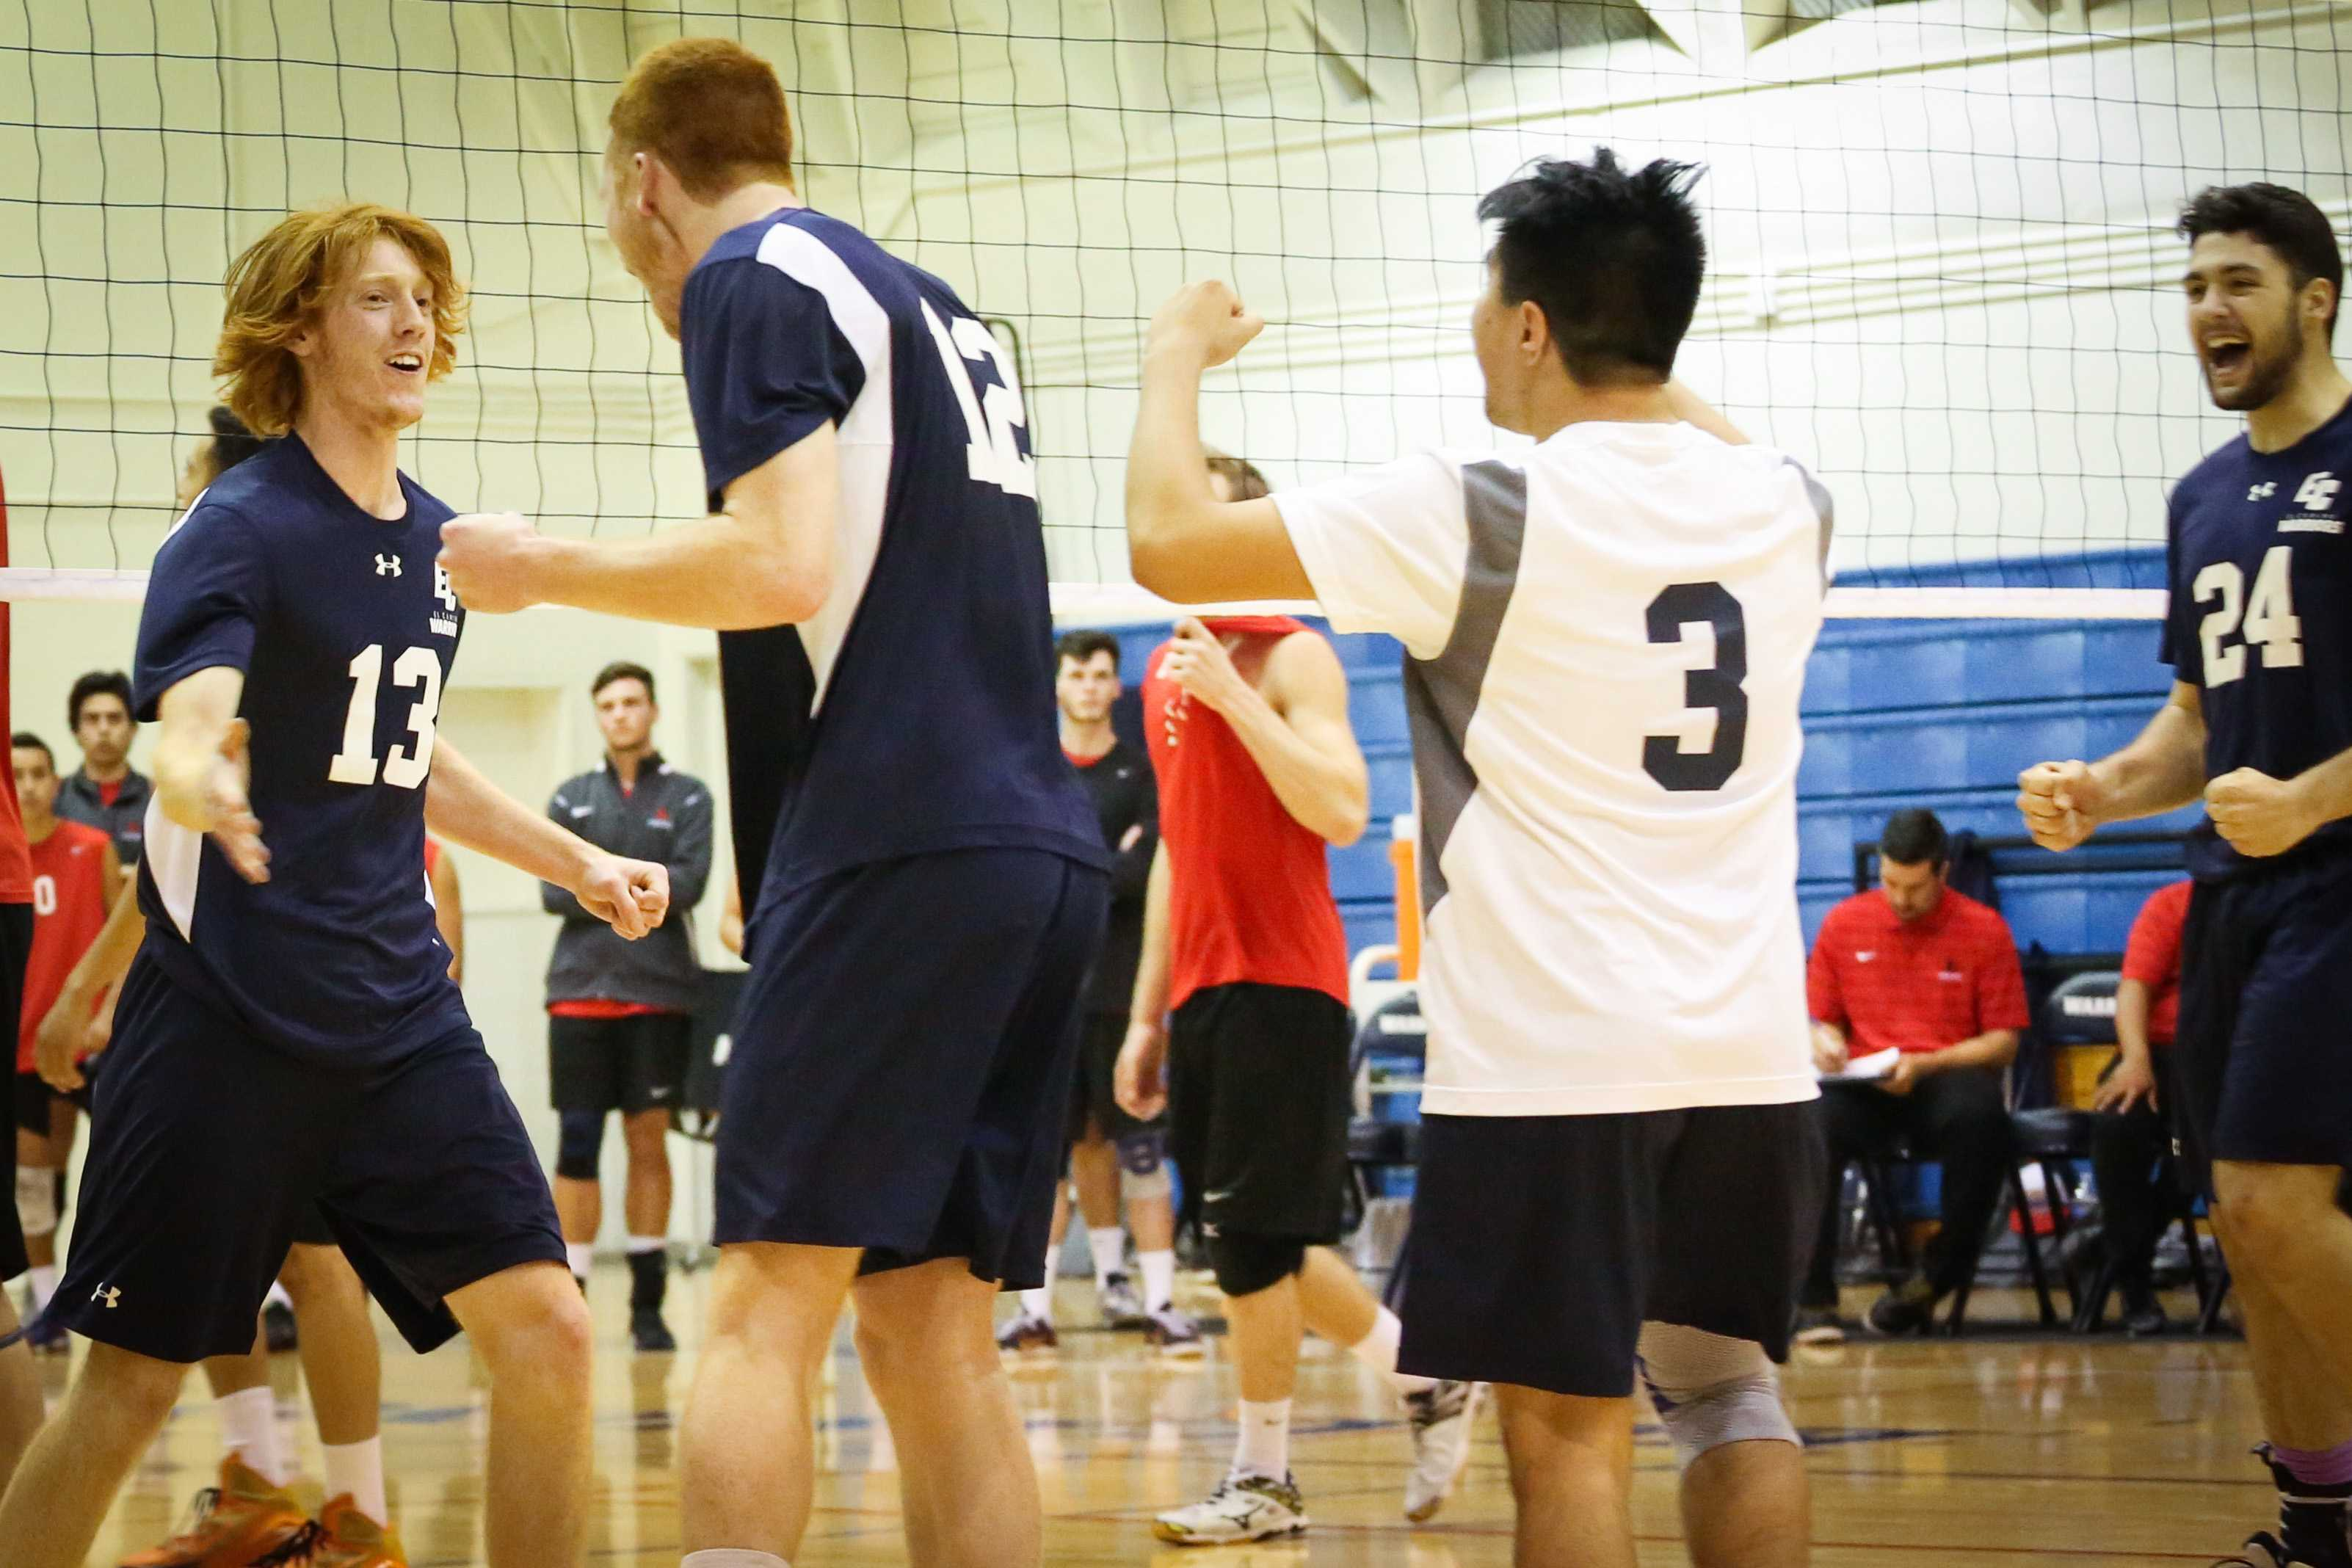 Outside hitter Josh Riblett (from left), middle blocker Peter Nordel, libero Andre Labayen, and setter Michael Otazu celebrate as they tie the game at 8-8 during set four. The Warriors played a home game against the Vikings on April 6. Photo credit: Sue Hong